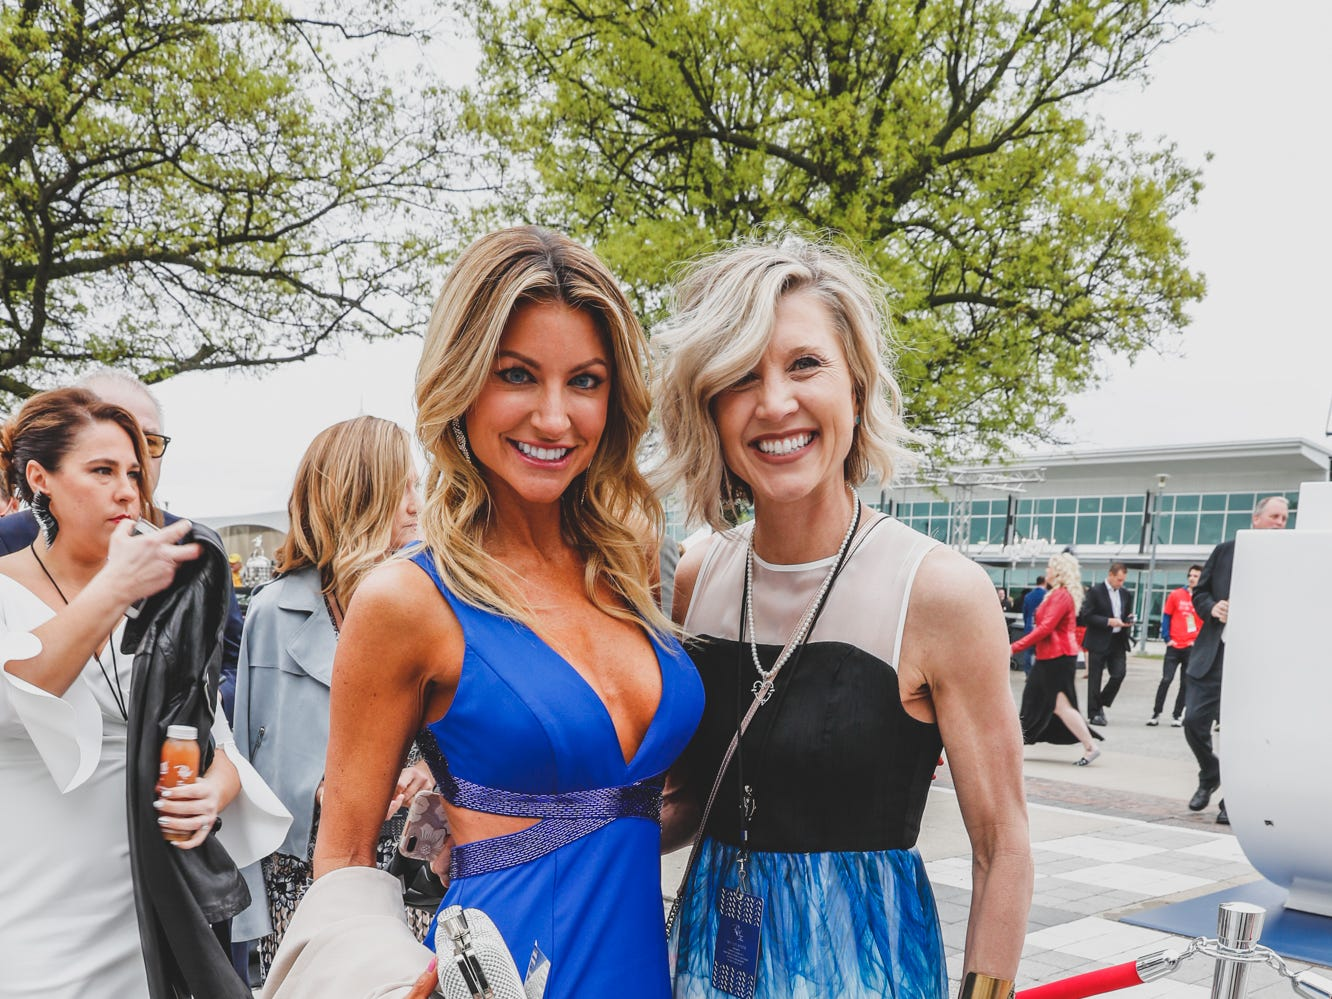 Media Personality Mckenzie Roth, left, and  Molly Tittle walk the red carpet at the Rev Indy fundraiser, held at the Indianapolis Motor Speedway on Saturday, May 4, 2019. Funds raised support the IU Health Foundation statewide and the IU Health Emergency Medical Center at IMS.